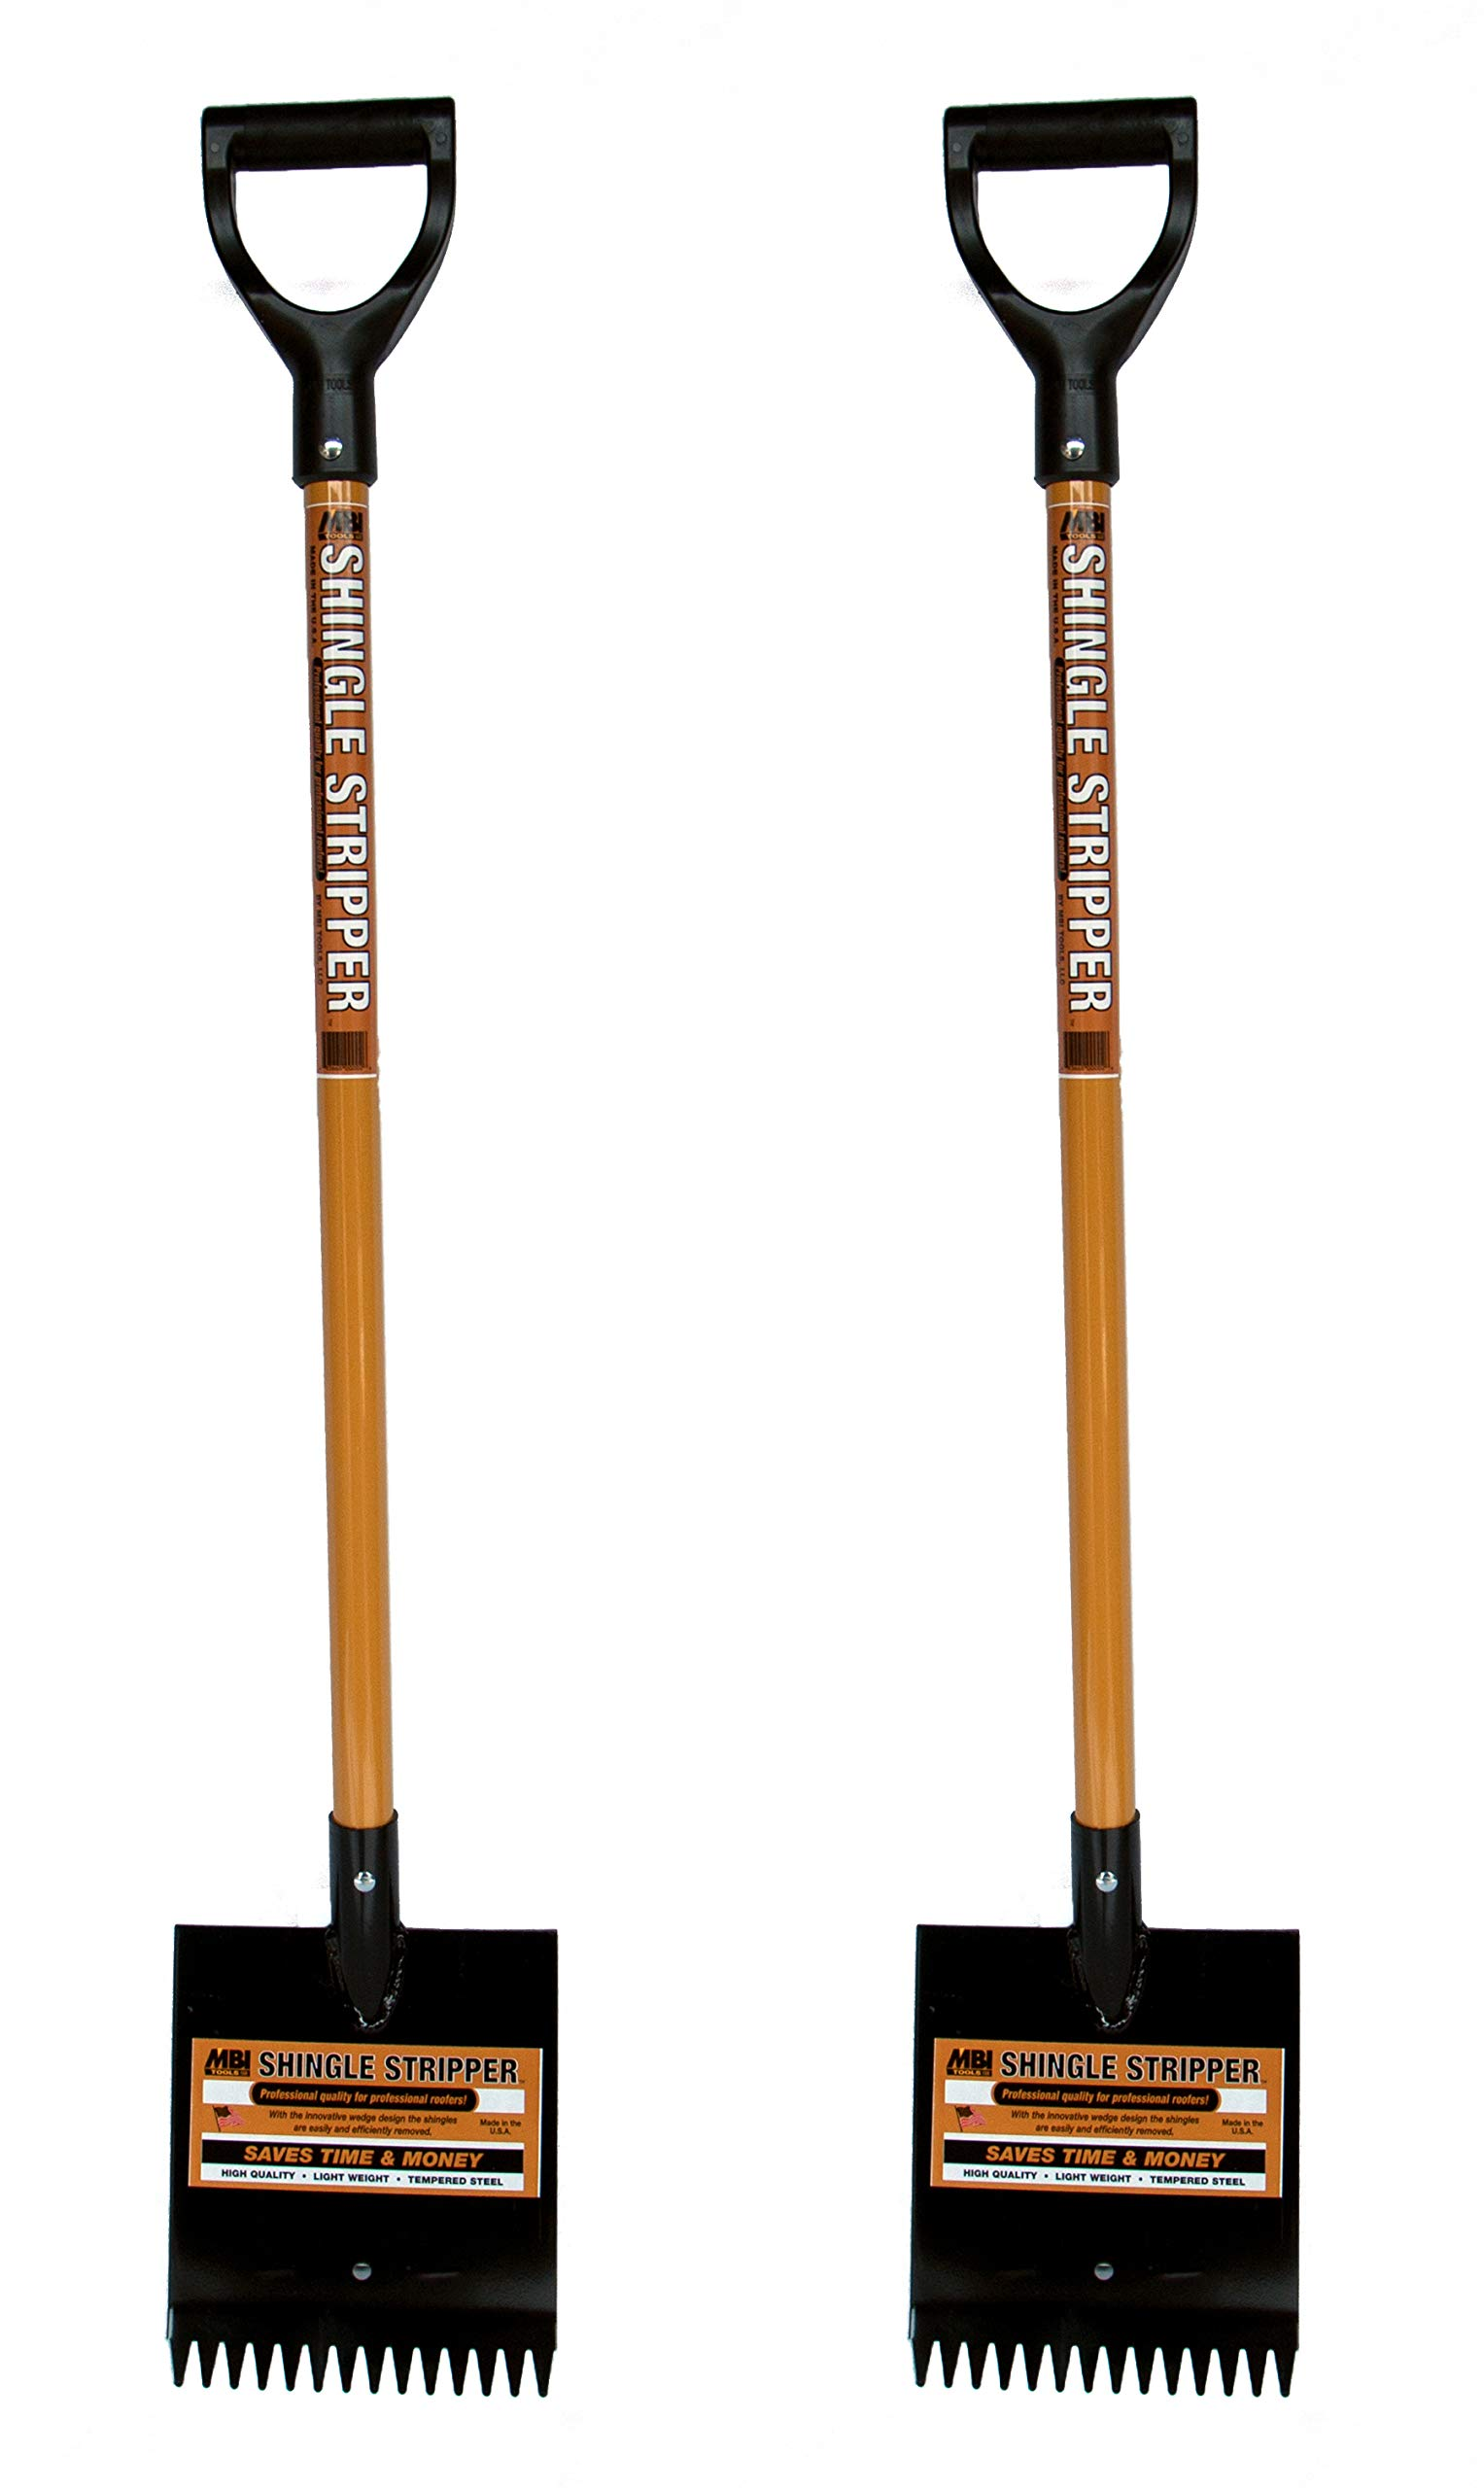 Shingle Stripper (2 Pack) by MBI Tools by MBI Tools